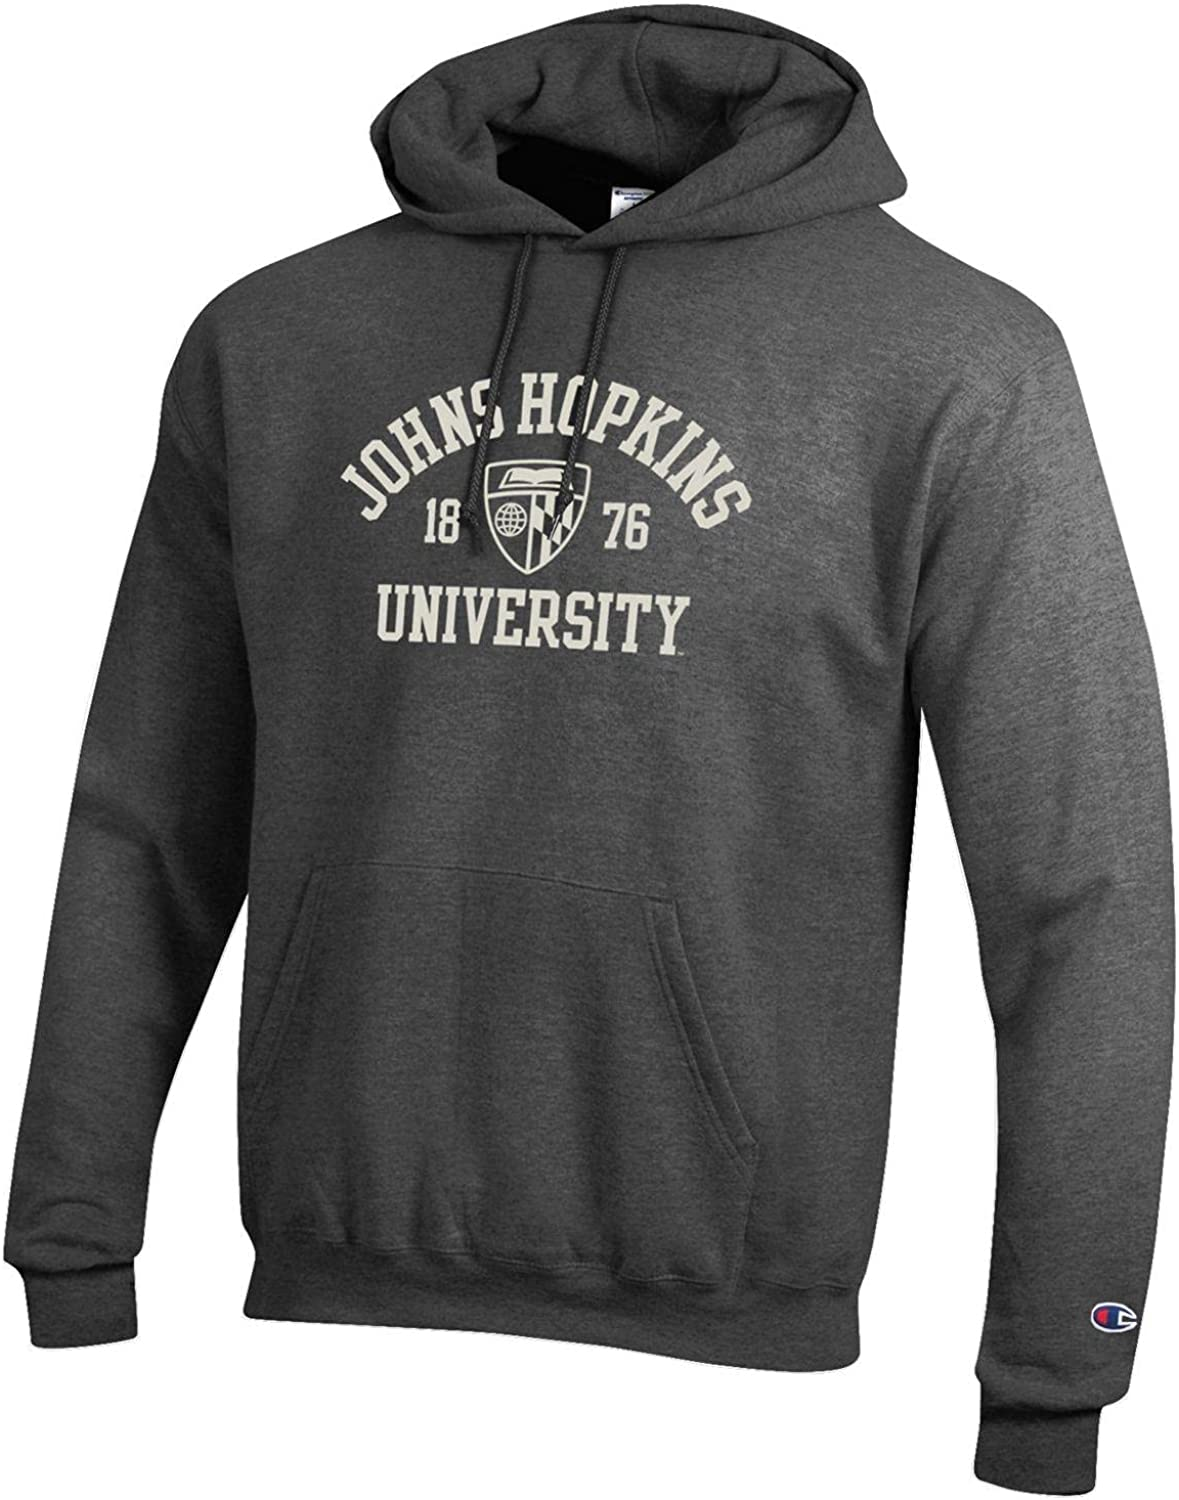 Johns Hopkins Special Many popular brands price for a limited time University Hoodie Sweatshirt Hooded